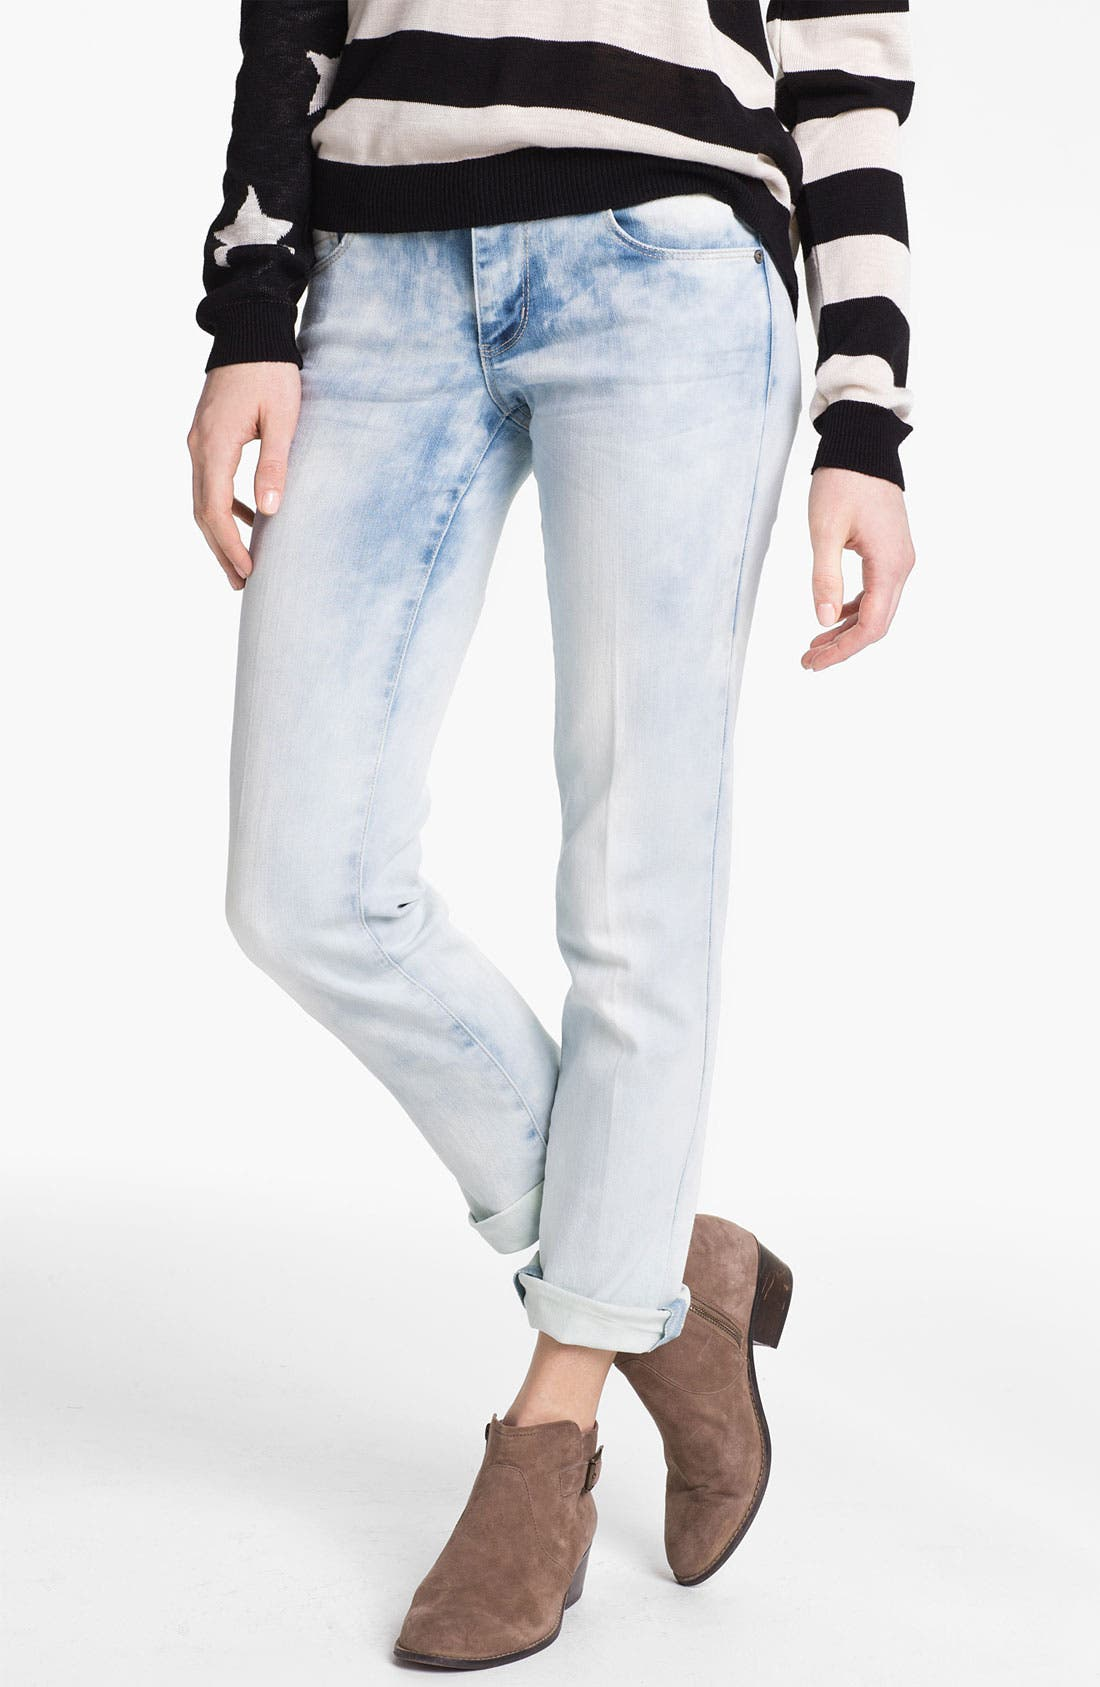 Alternate Image 1 Selected - Jolt Acid Wash Boyfriend Skinny Jeans (Juniors)